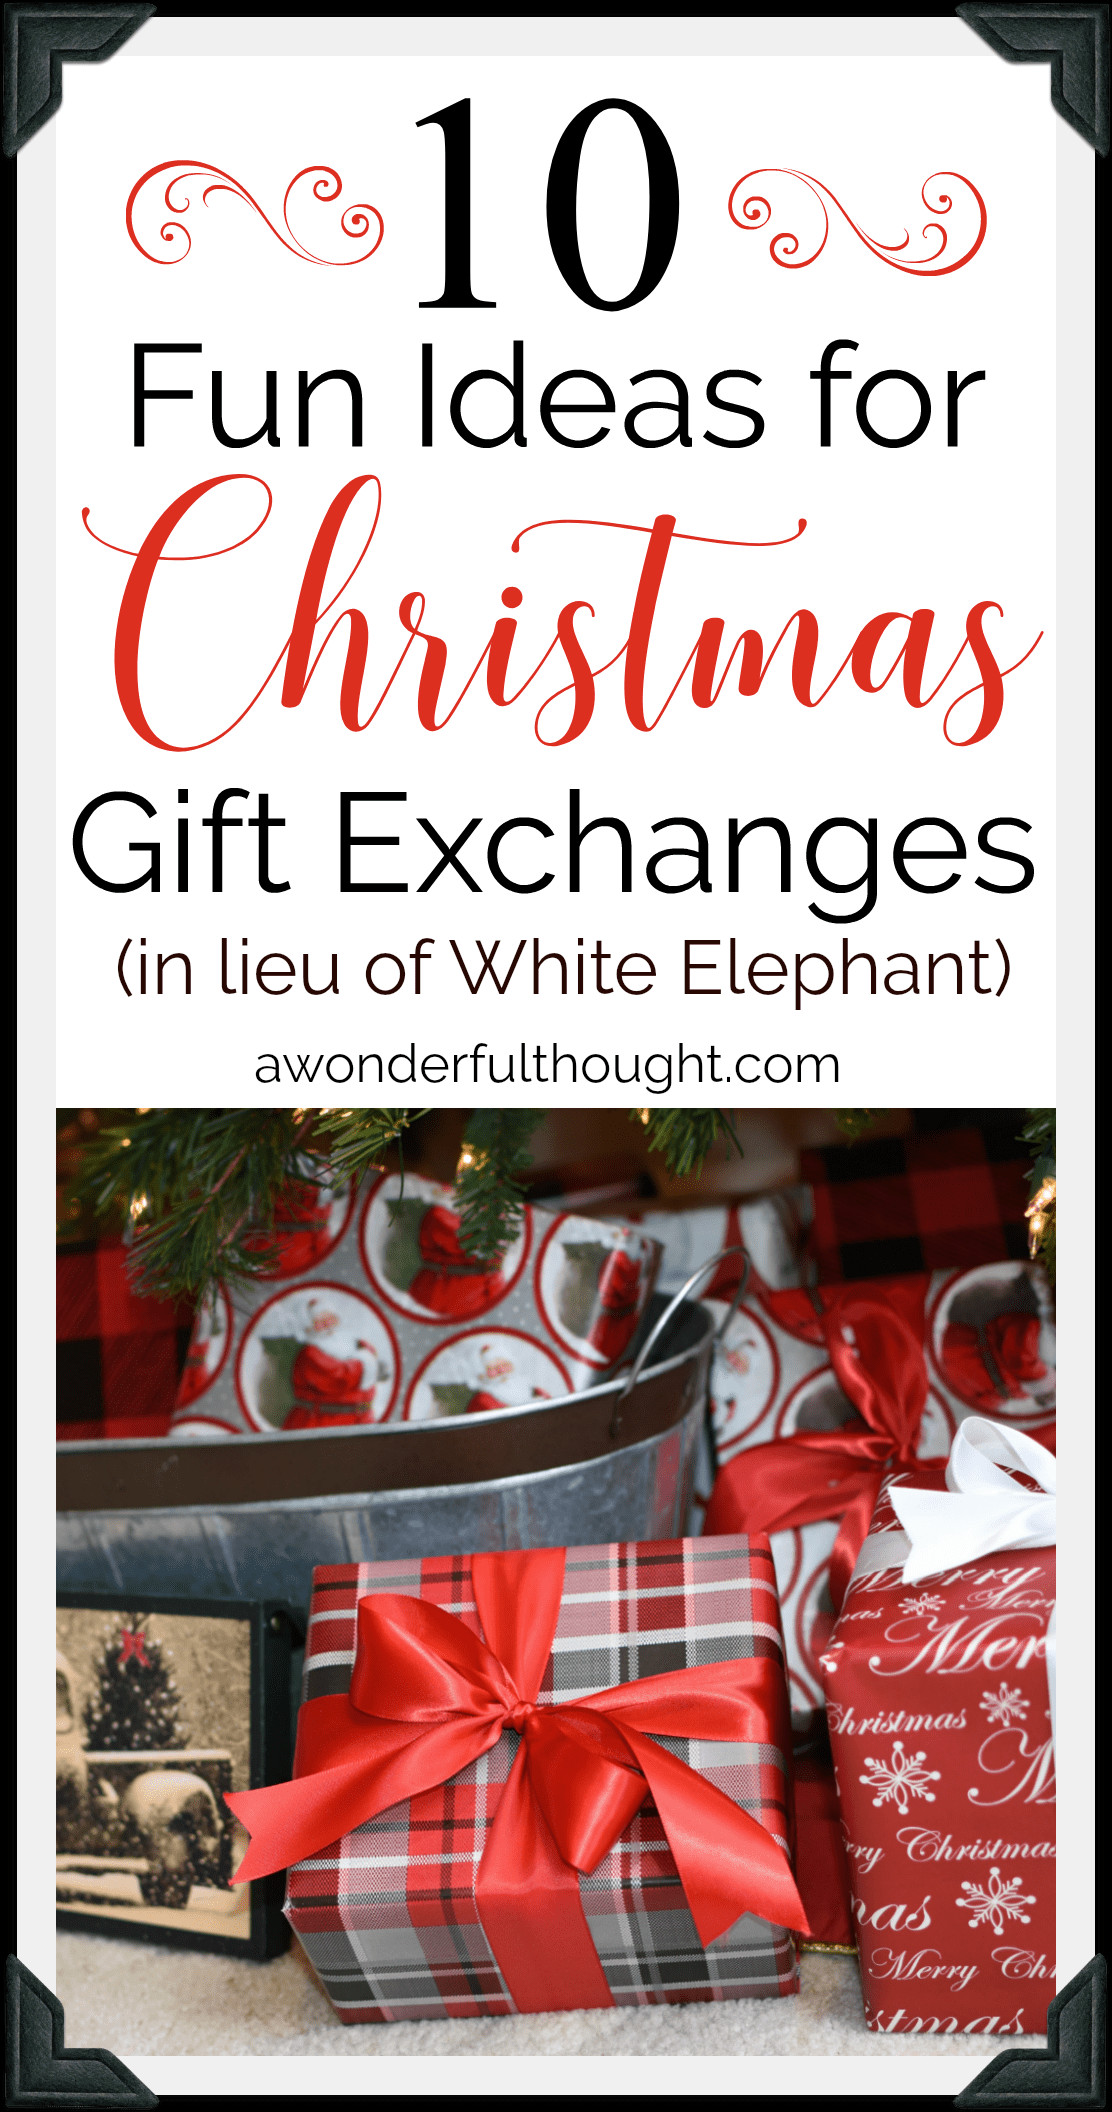 Christmas Gift Exchange Ideas For Coworkers.The Top 20 Ideas About Christmas Gift Exchange Ideas For